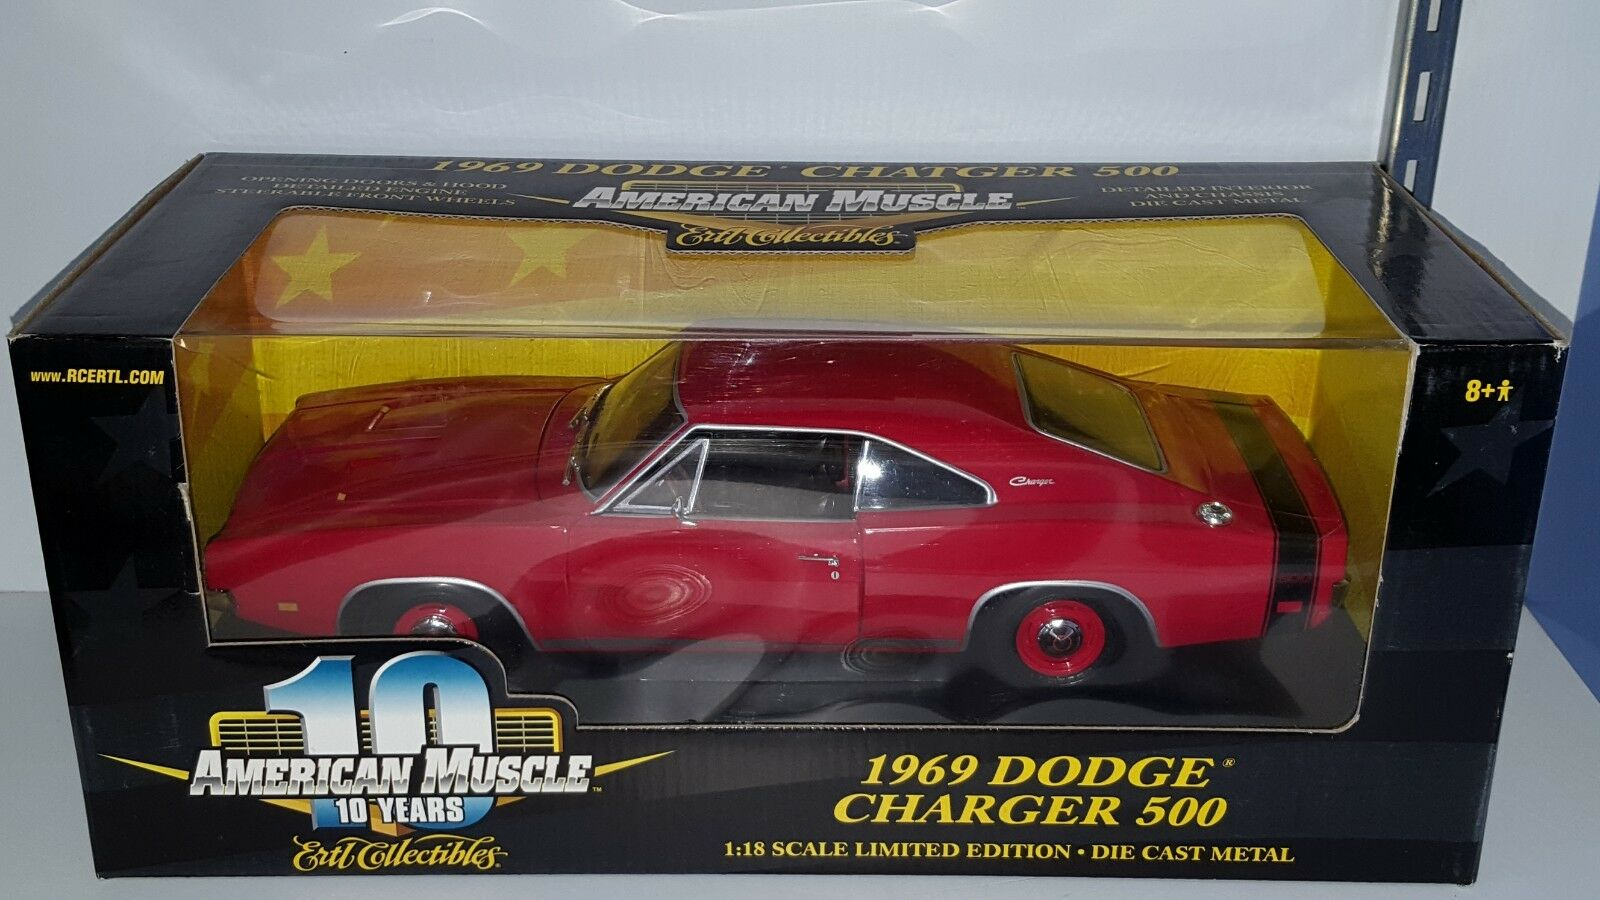 1 18 ertl american muscle 1969 Dodge Charger 500 rouge Yd